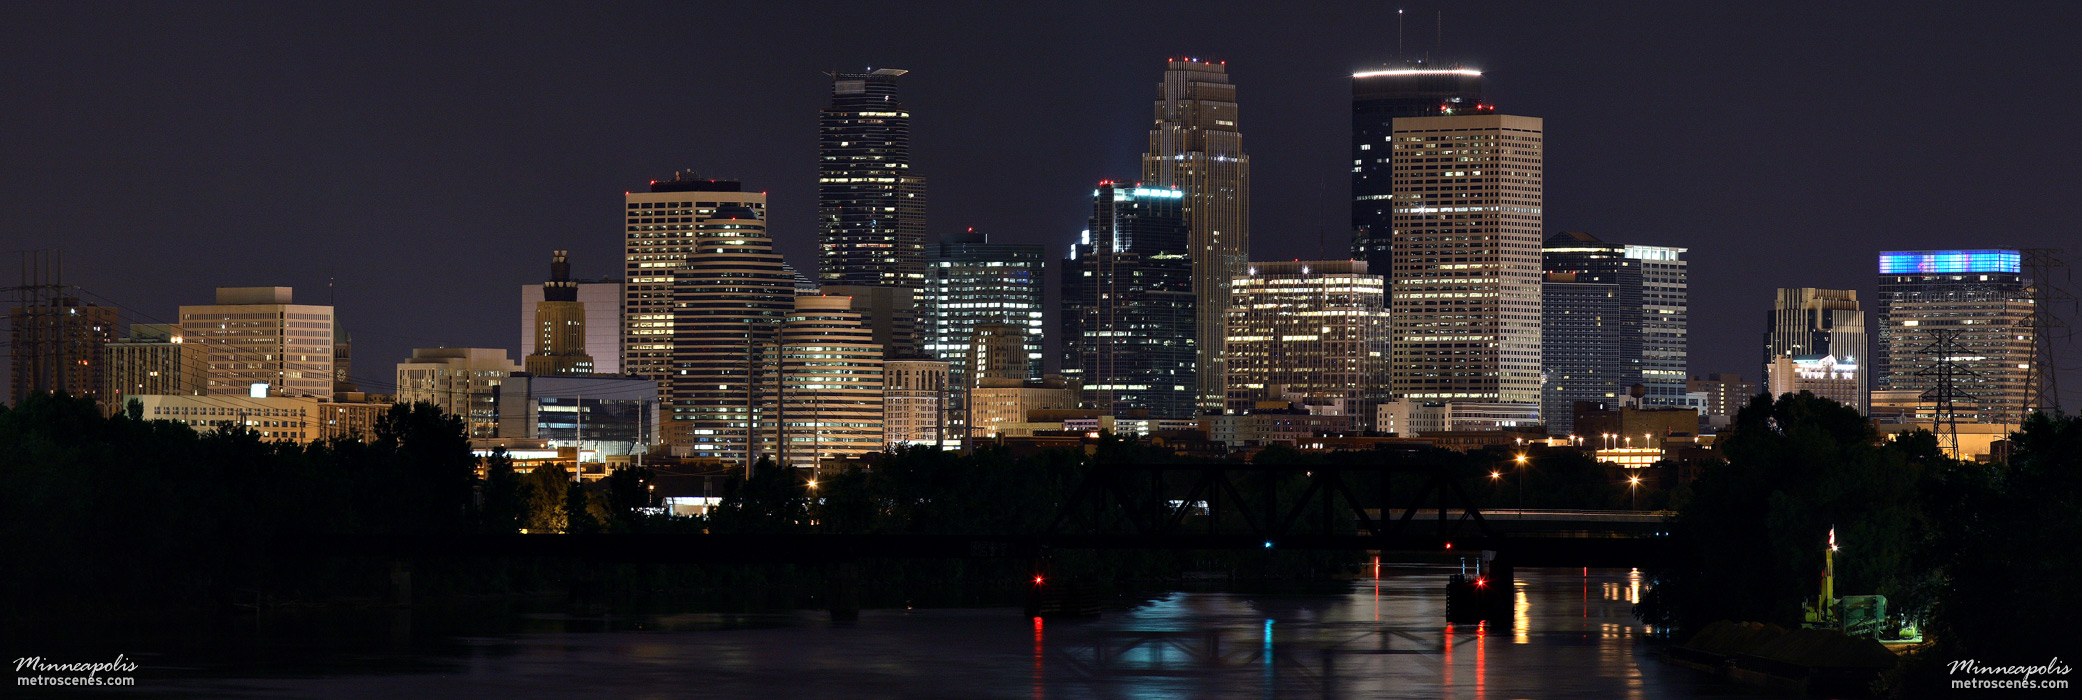 minneapolis_metroscenes_com_01.jpg